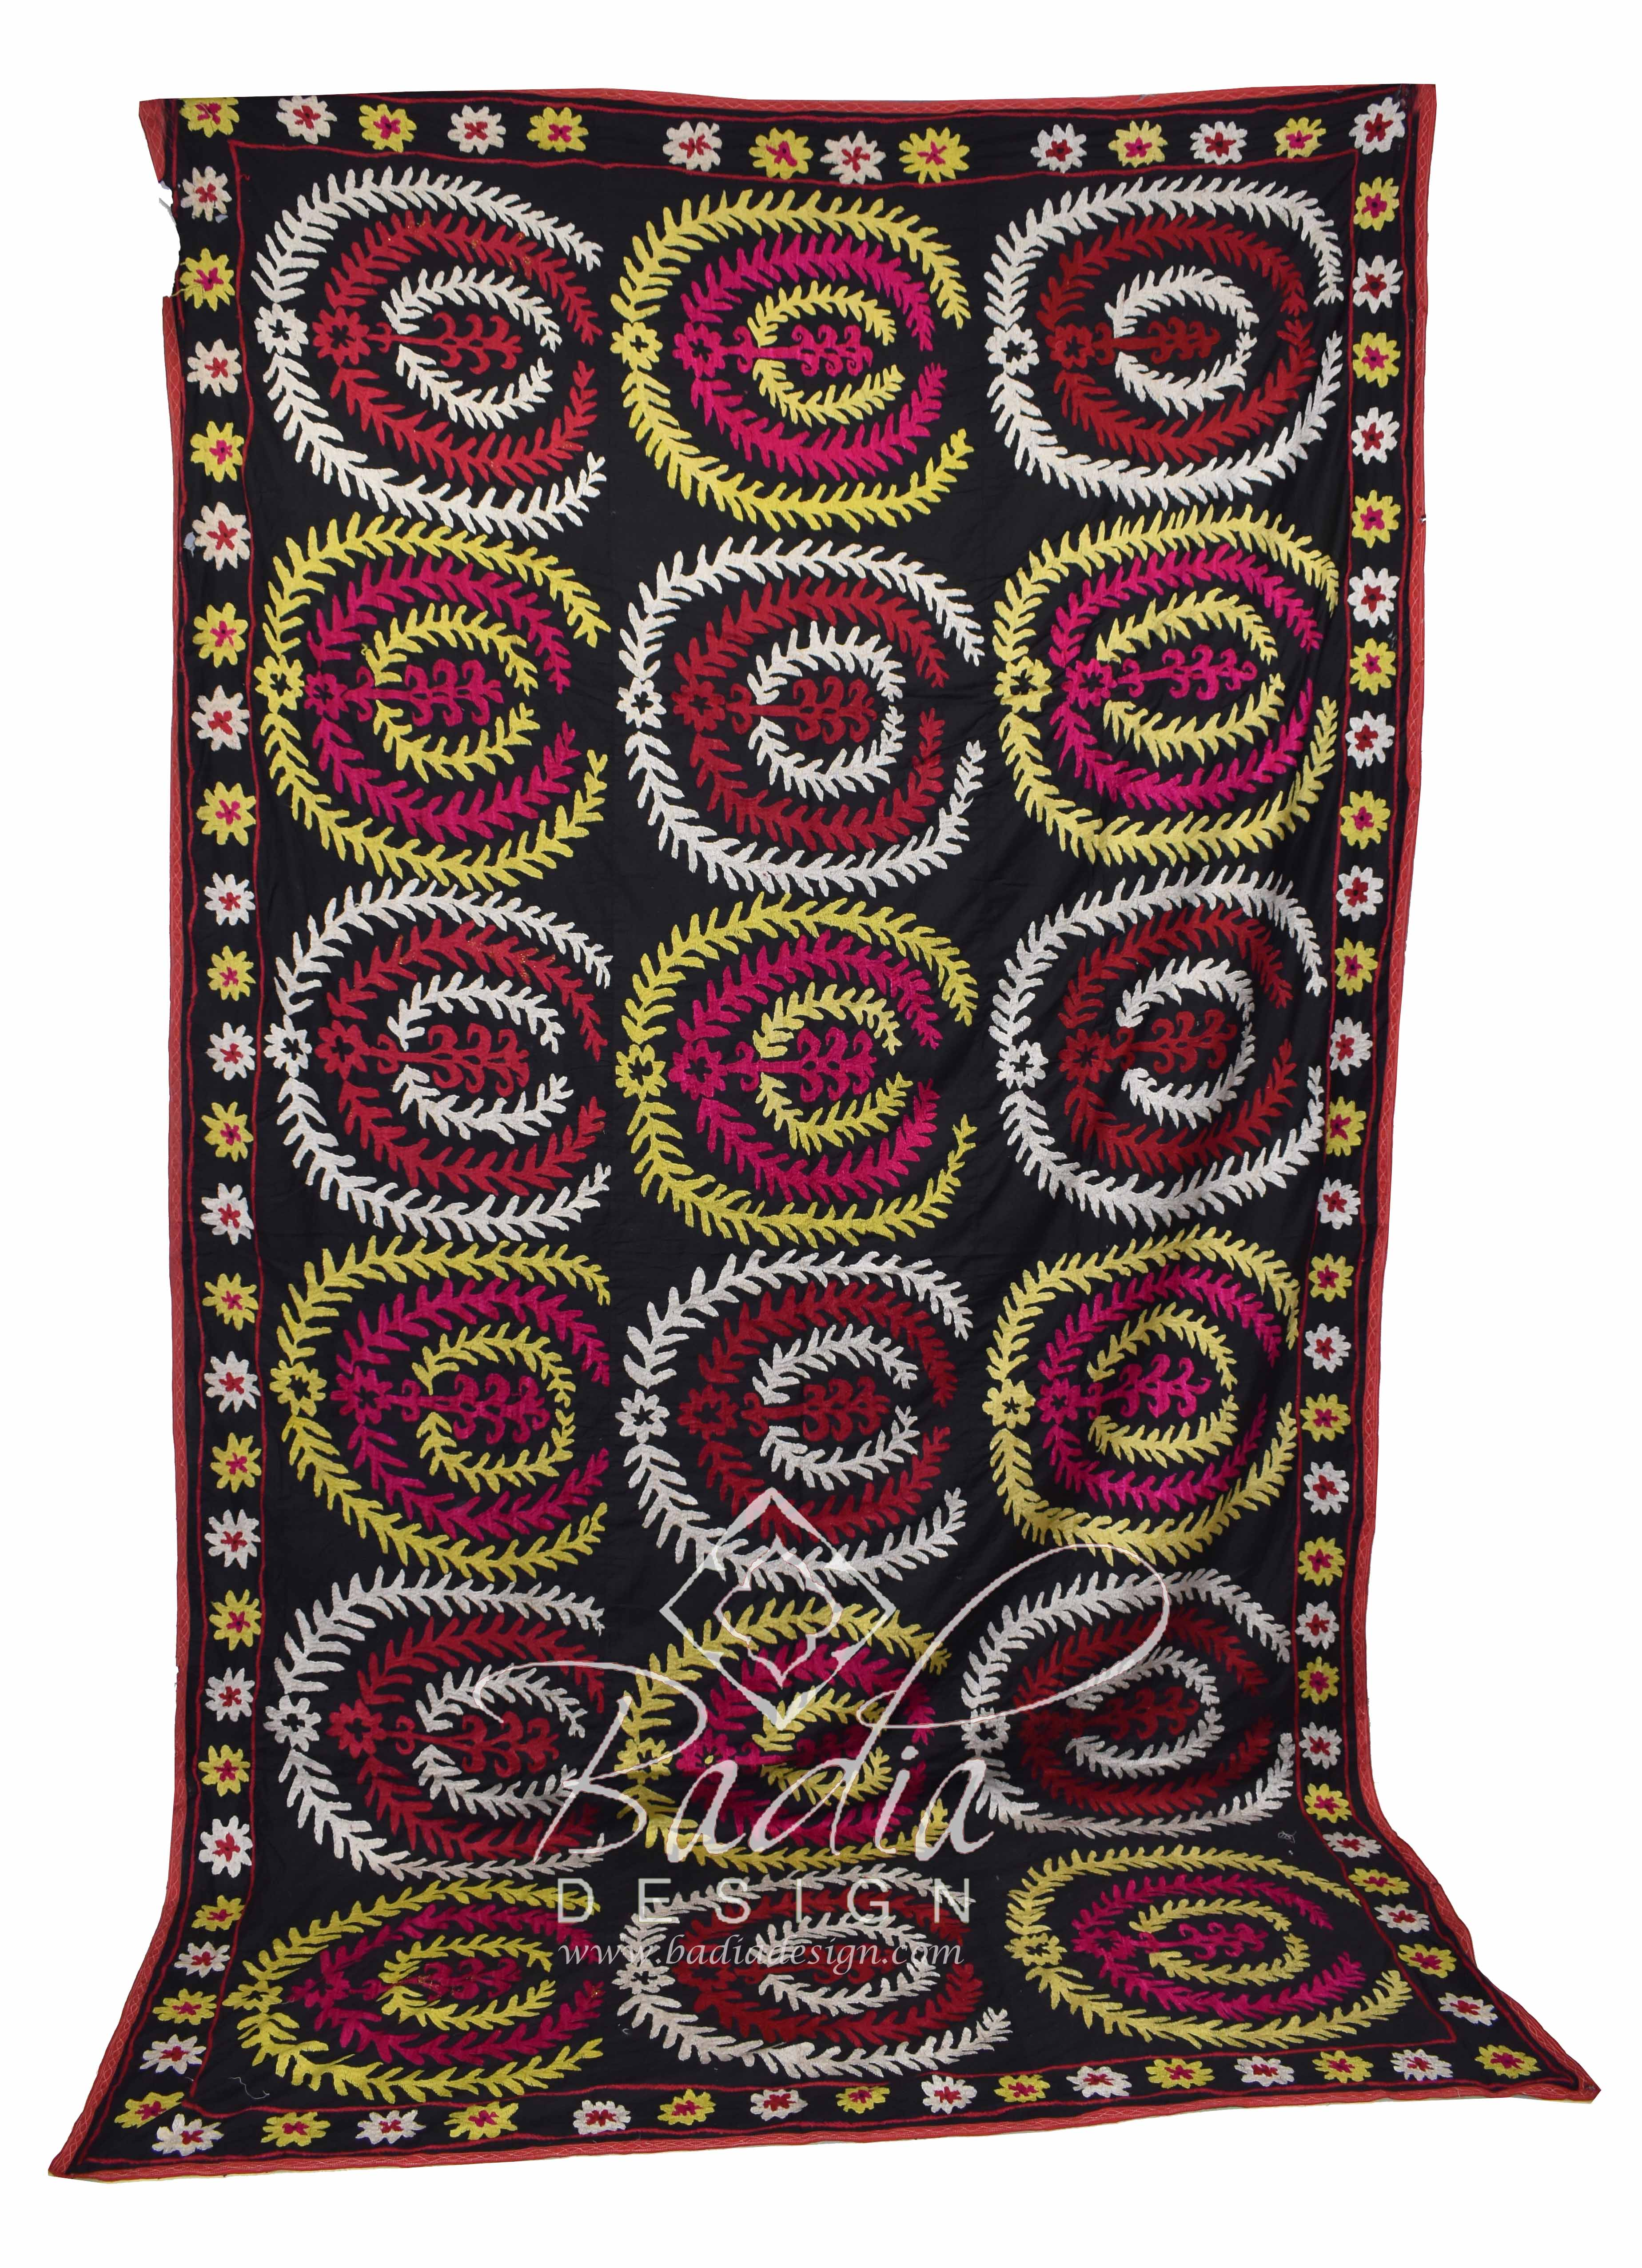 embroidery-textile-suzani-quilt-suzqlt008.jpg